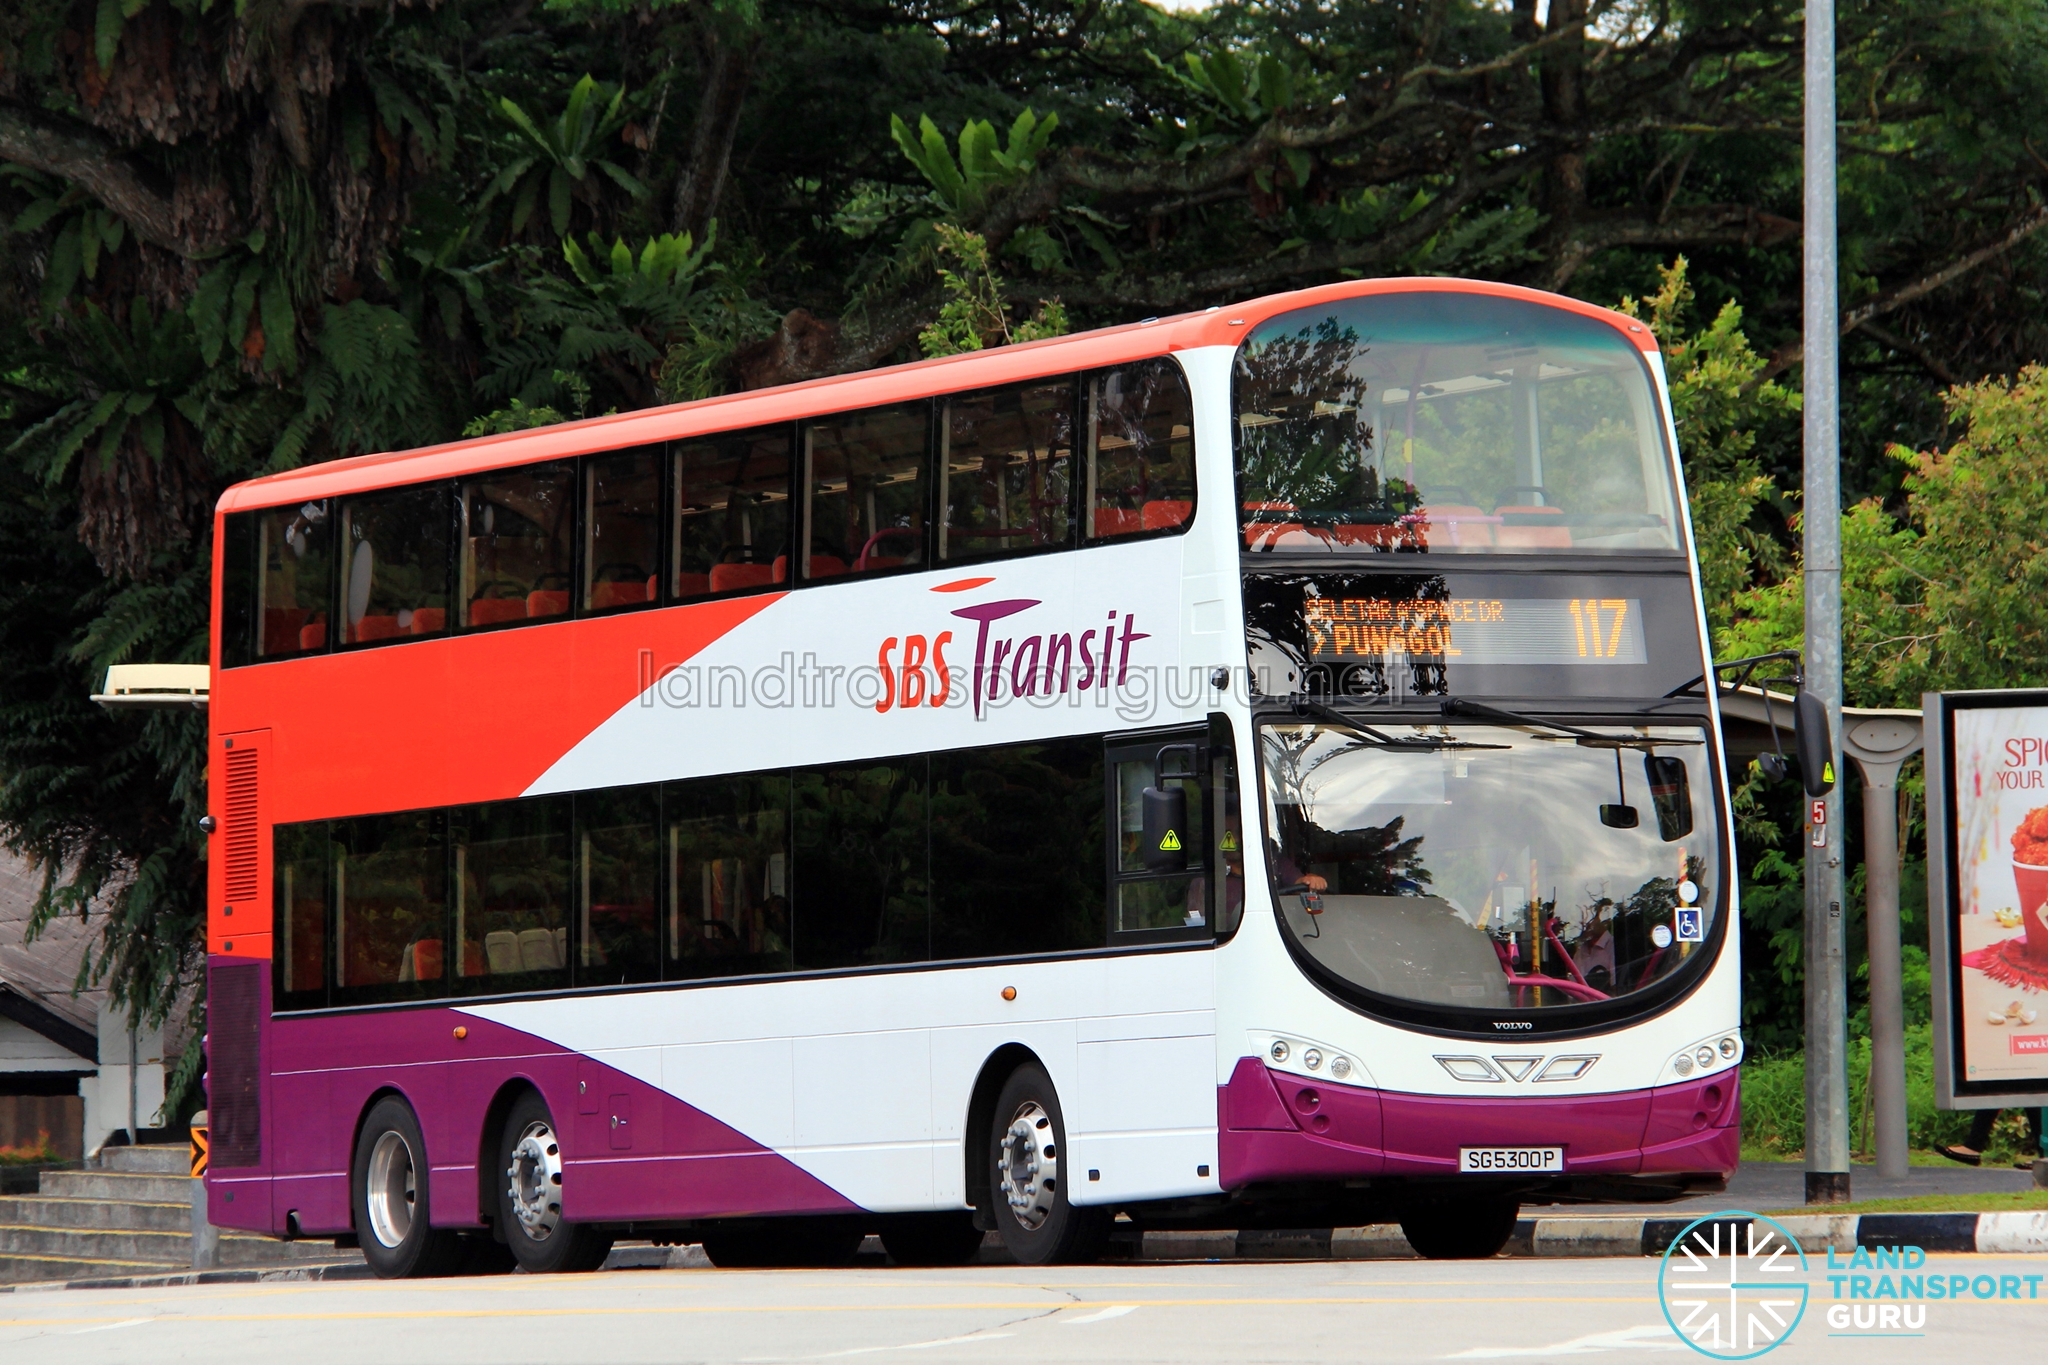 sbs transit bus service 117 | land transport guru